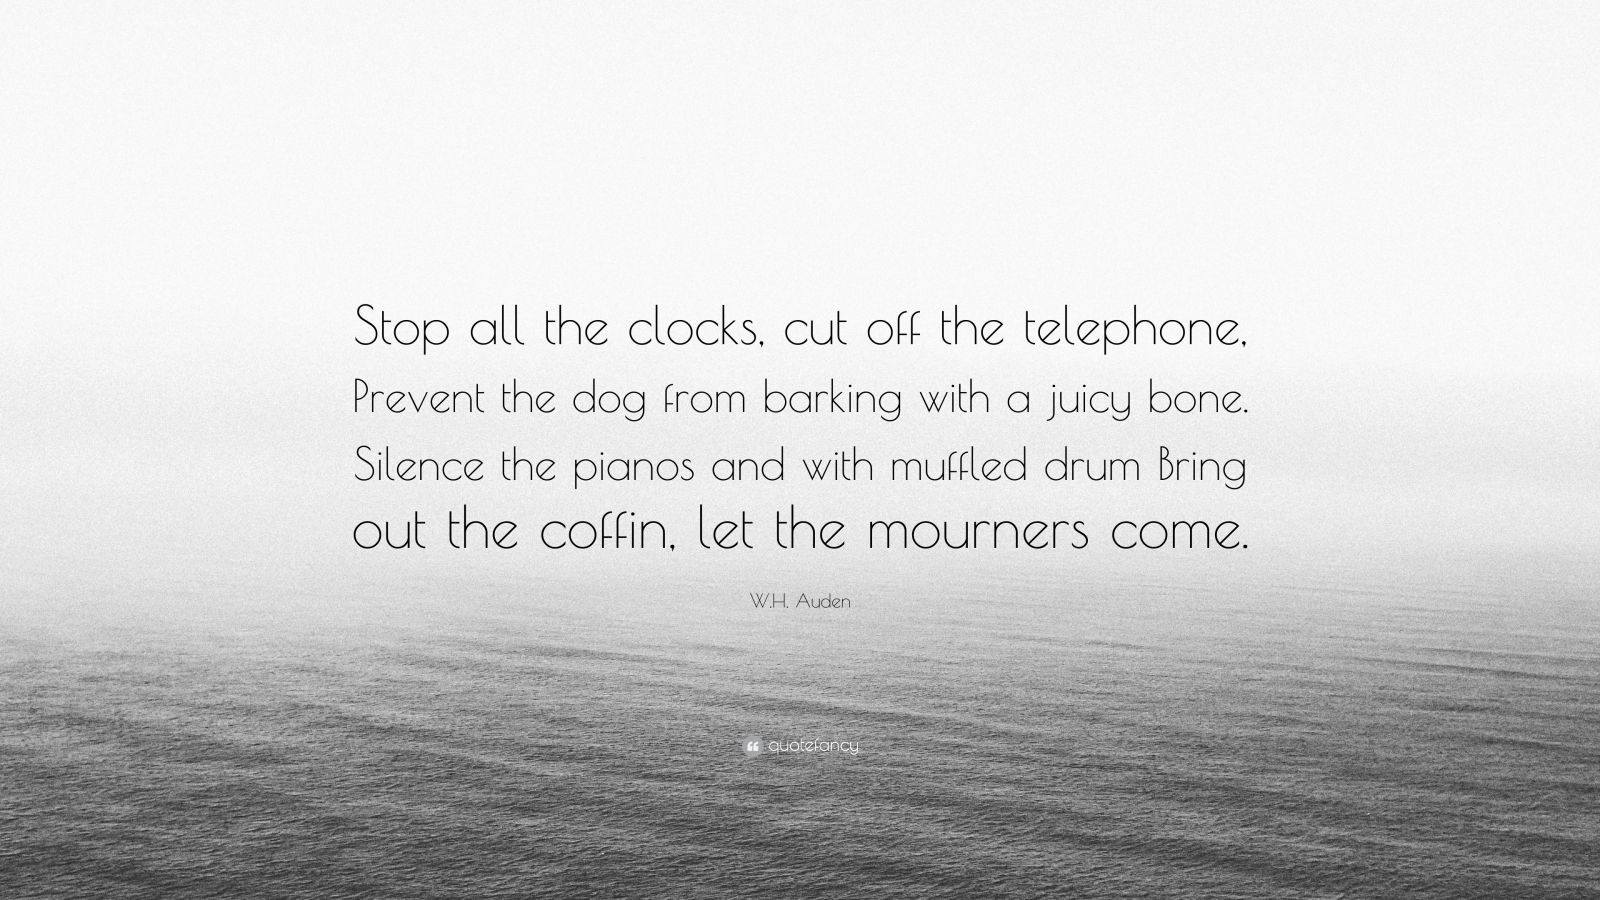 """W.H. Auden Quote: """"Stop all the clocks, cut off the telephone, Prevent the dog from barking with a juicy bone. Silence the pianos and with muffled drum Bring out the coffin, let the mourners come."""""""